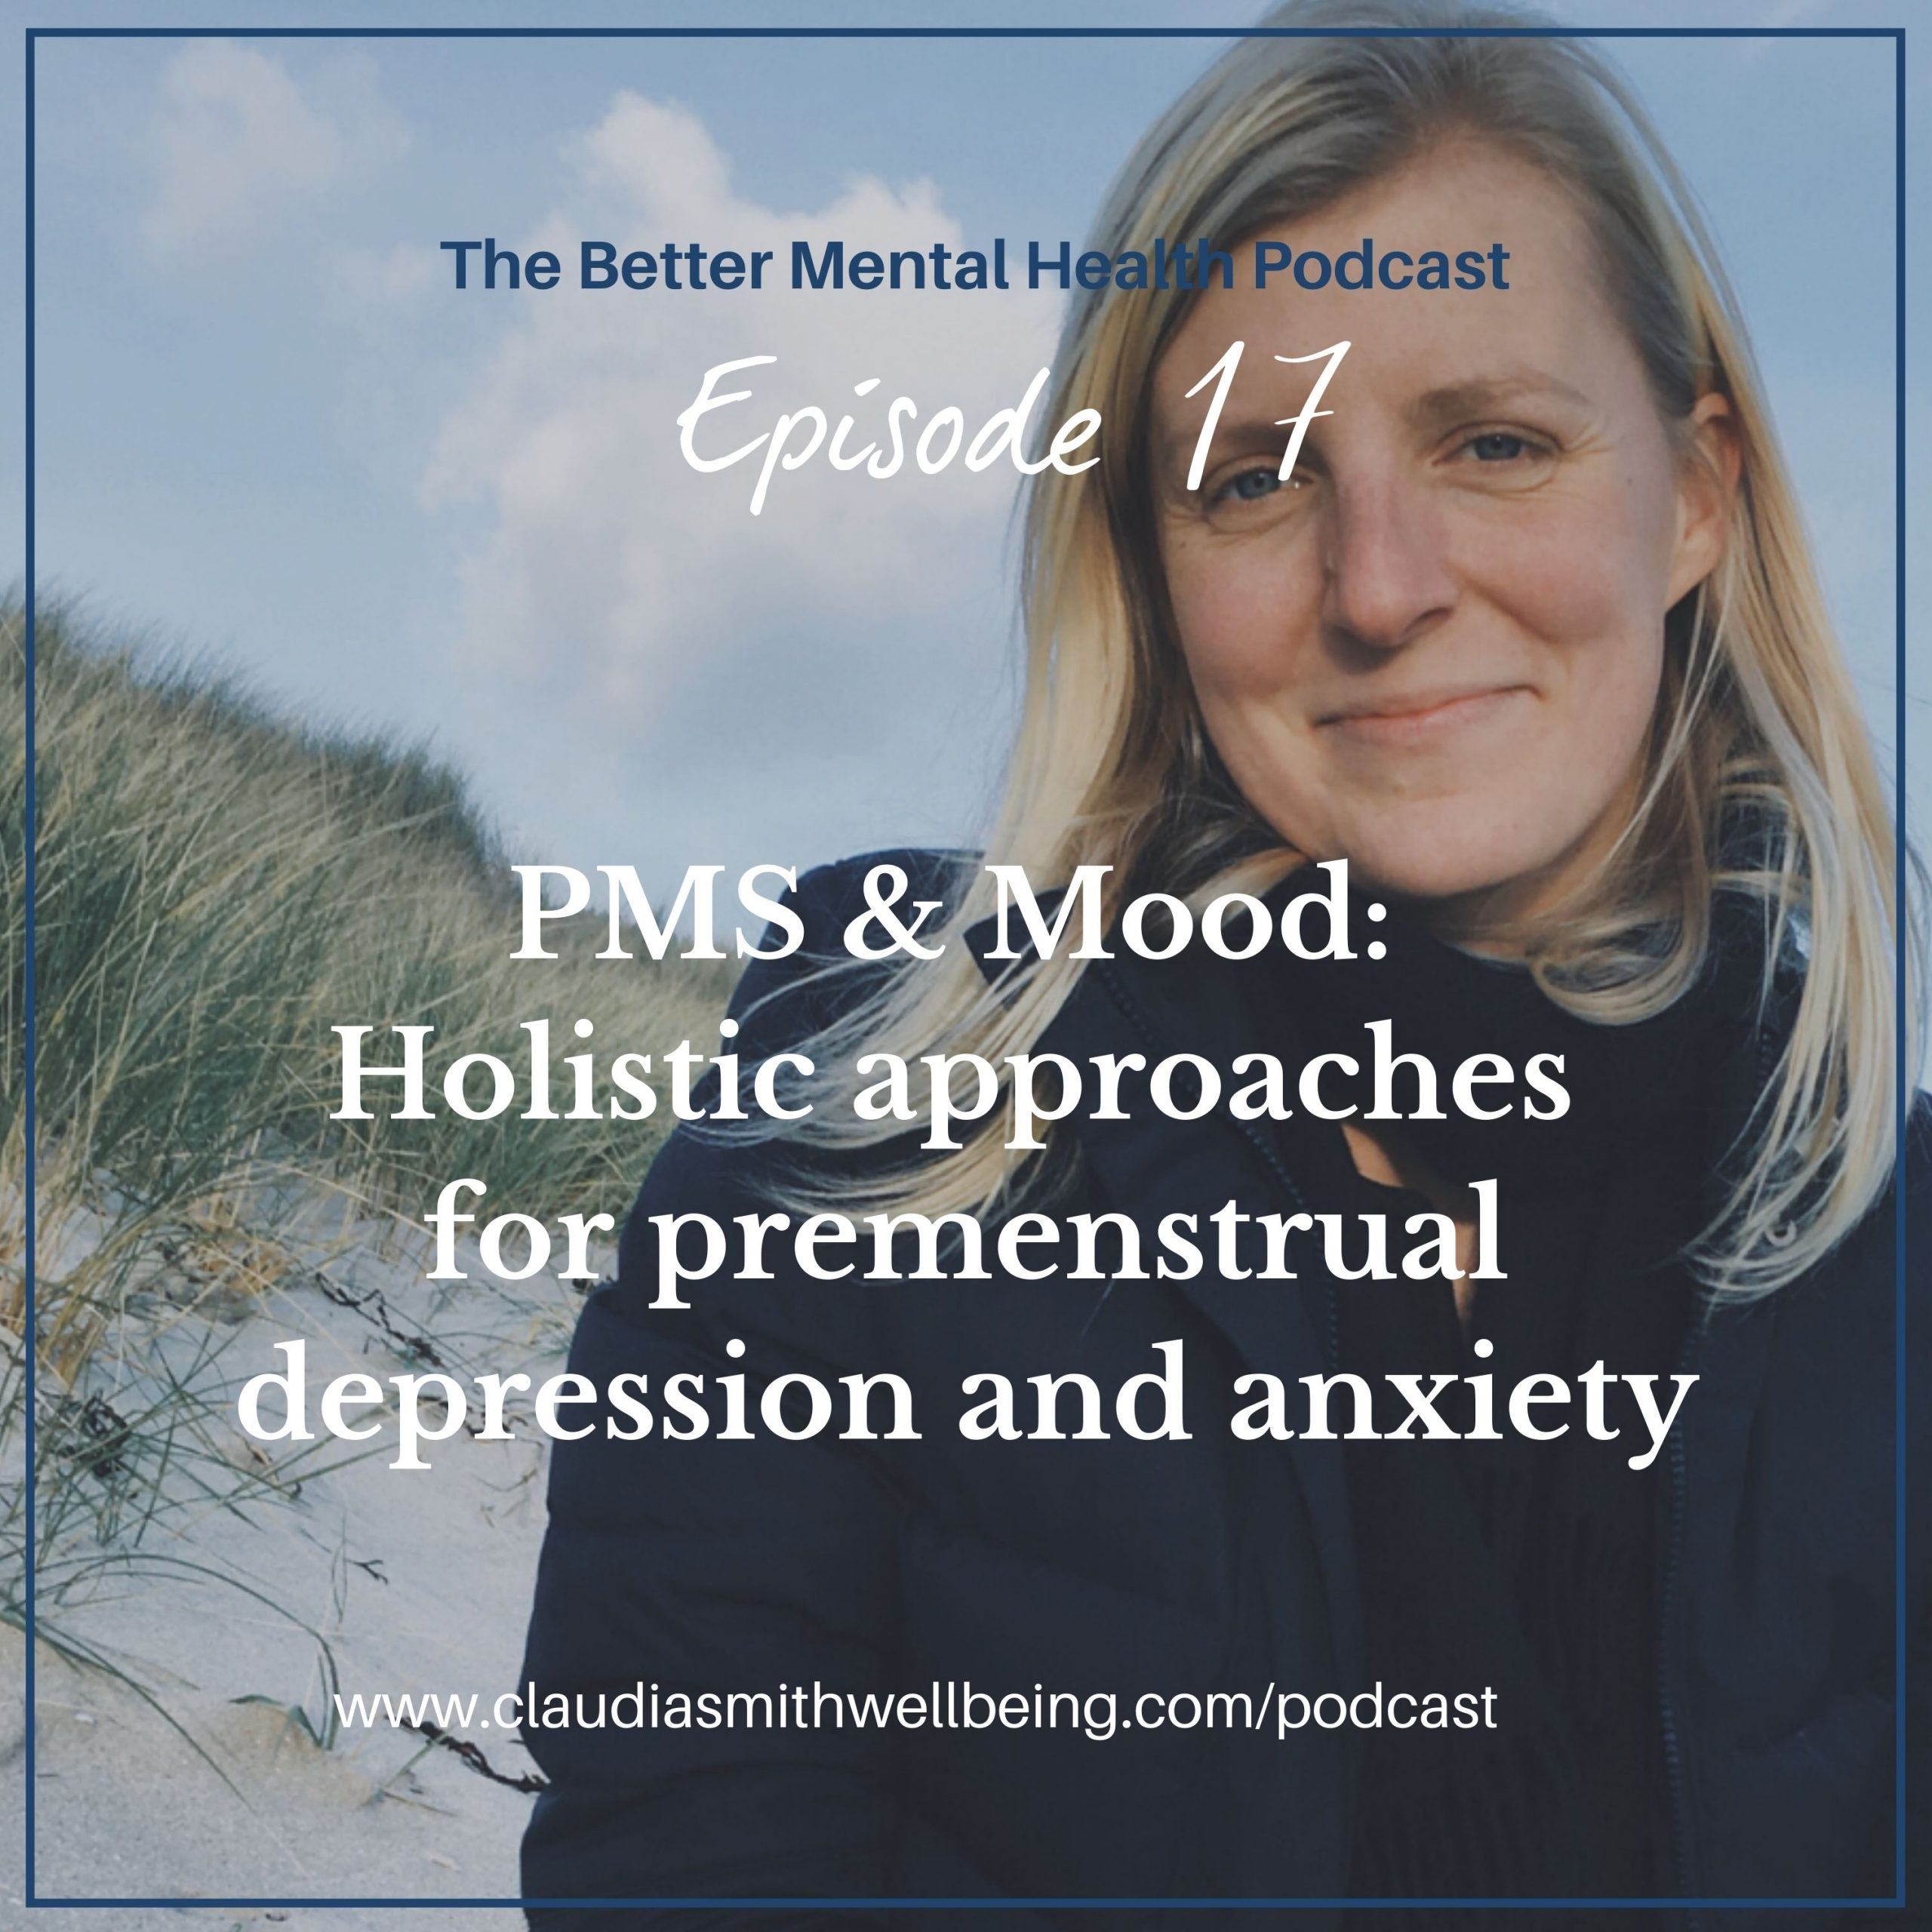 PMS & Mood: Holistic approaches for premenstrual depression and anxiety